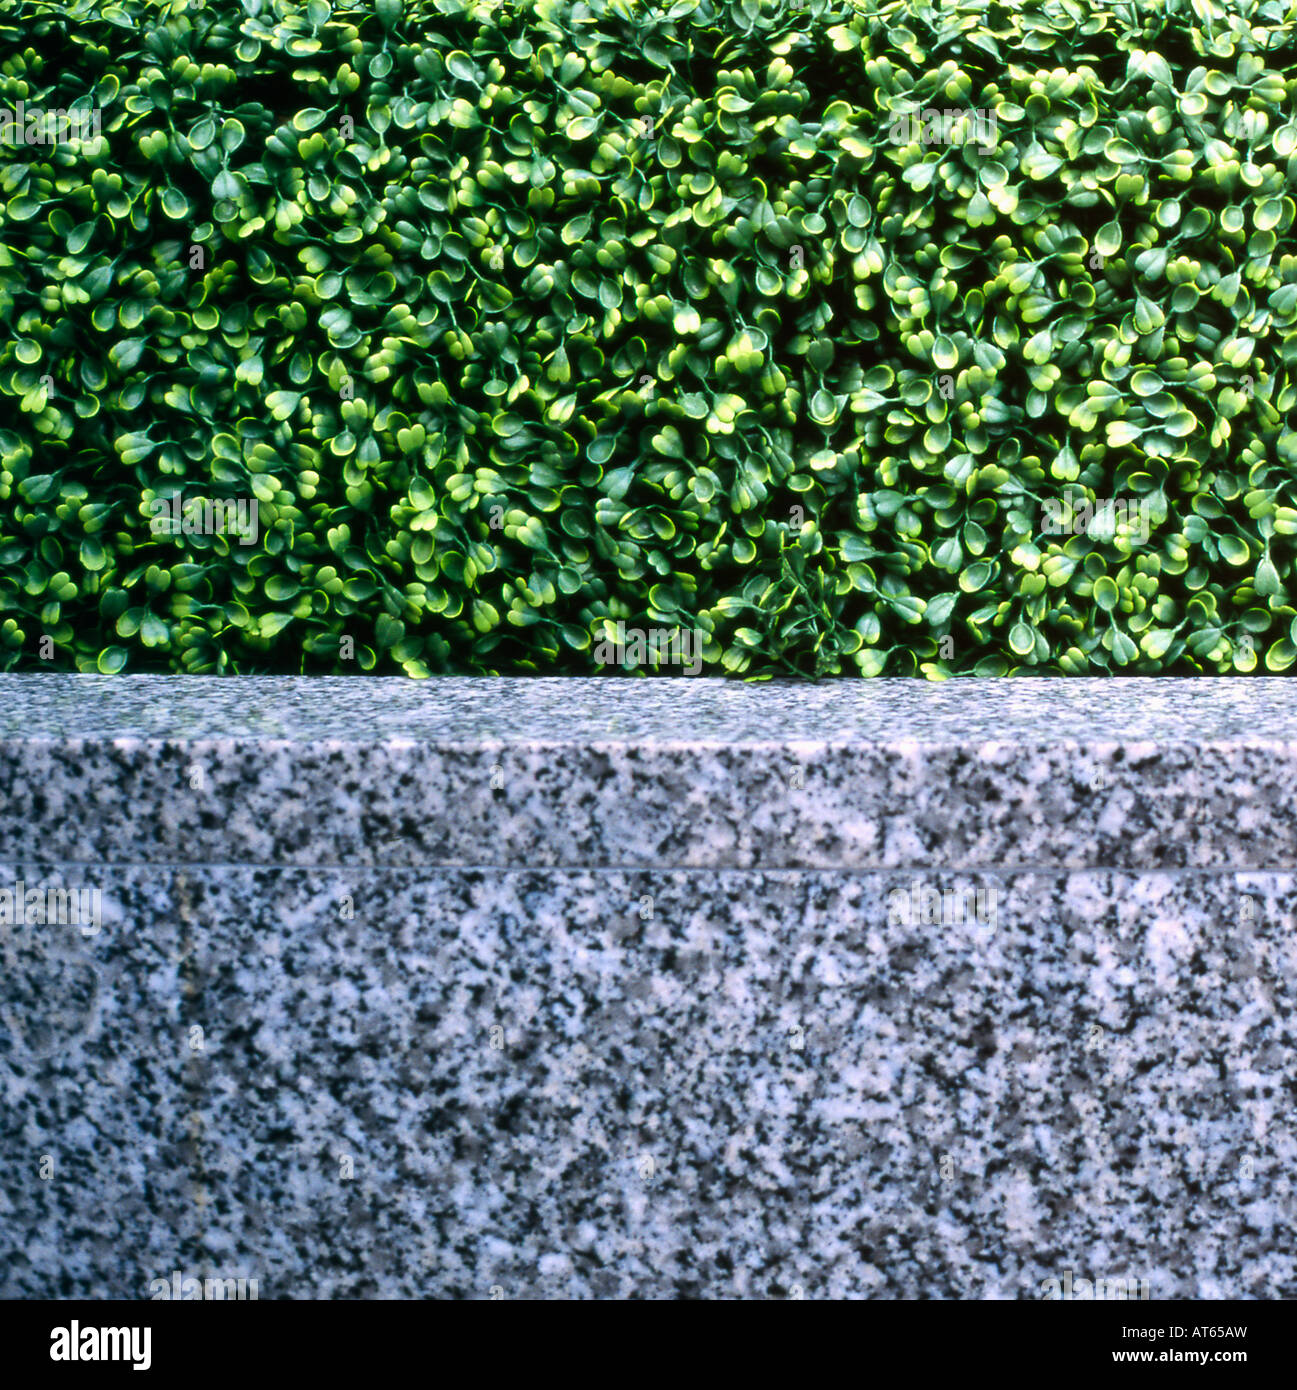 Fake green privet hedge and grey marble surfaces in the financial district of the City of London, England 2007 - Stock Image